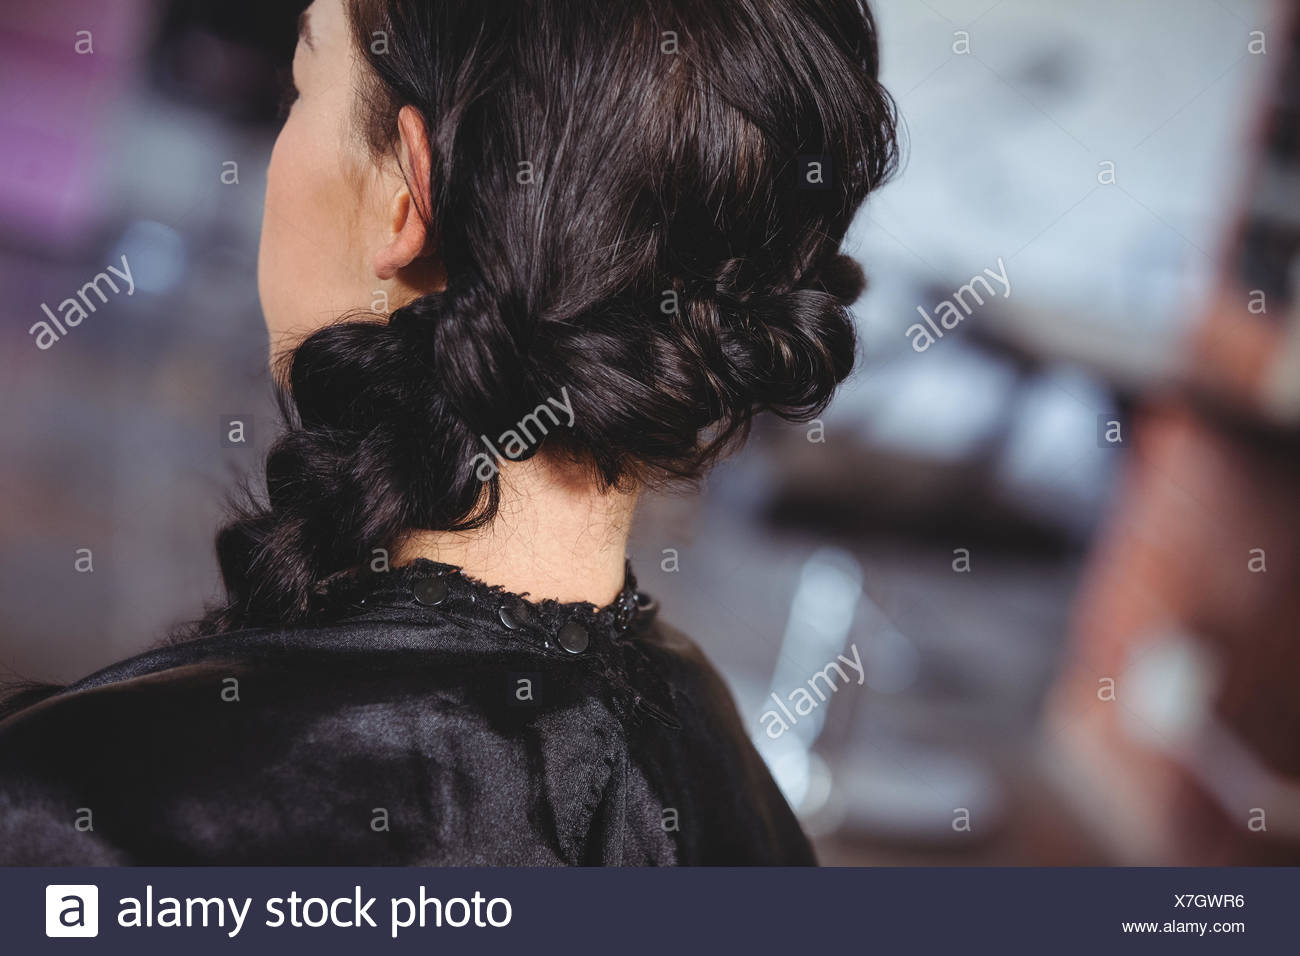 Rear view of woman with braids hairstyle - Stock Image